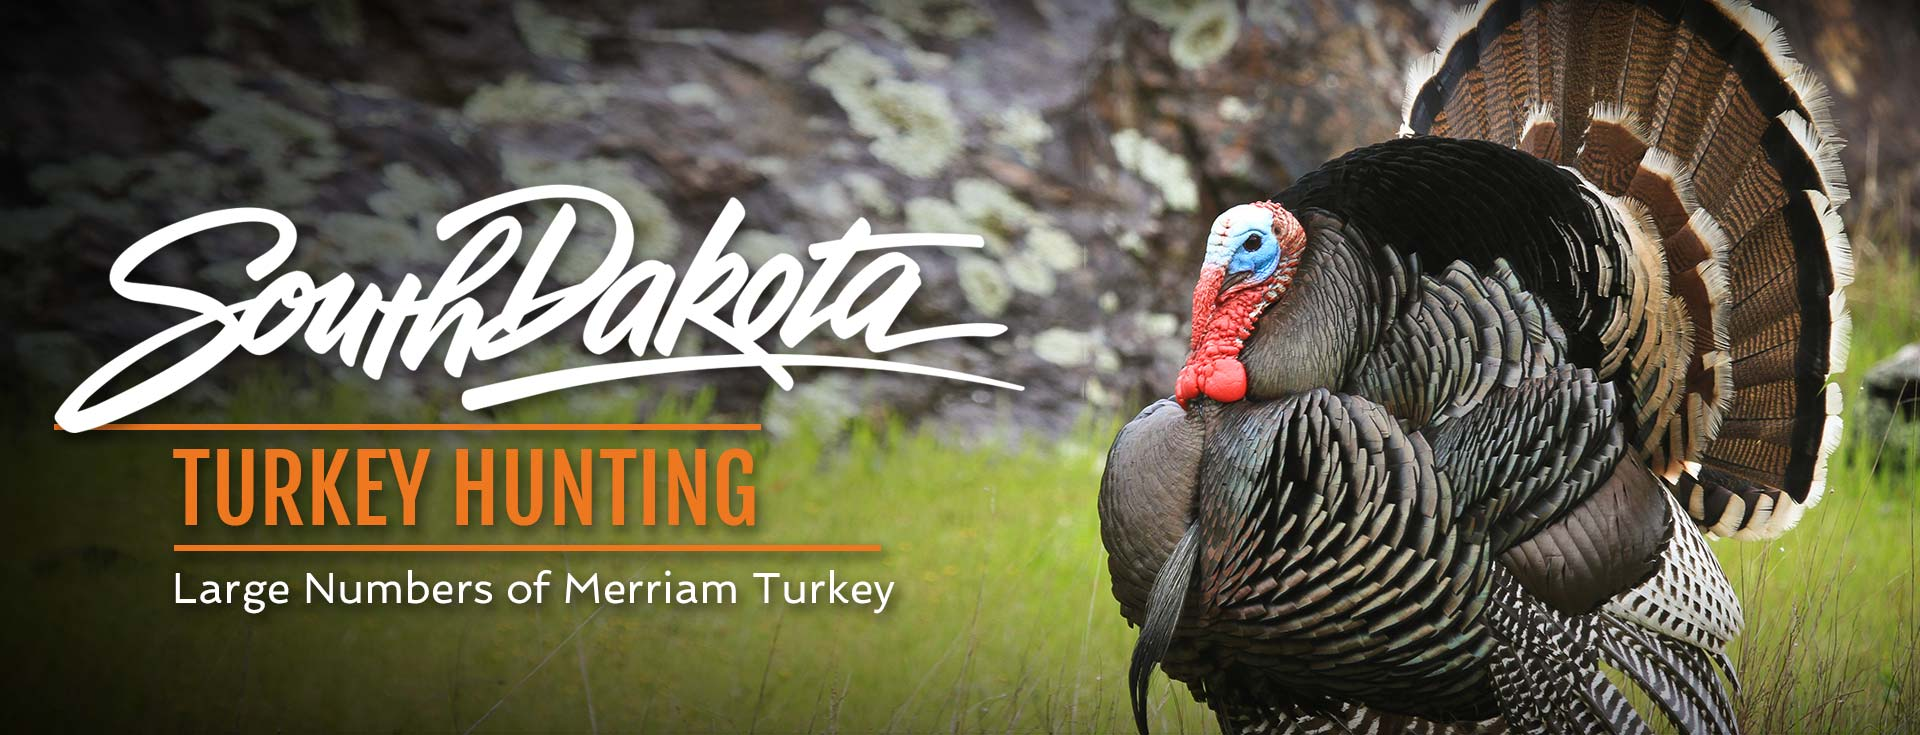 South Dakota Turkey Hunting